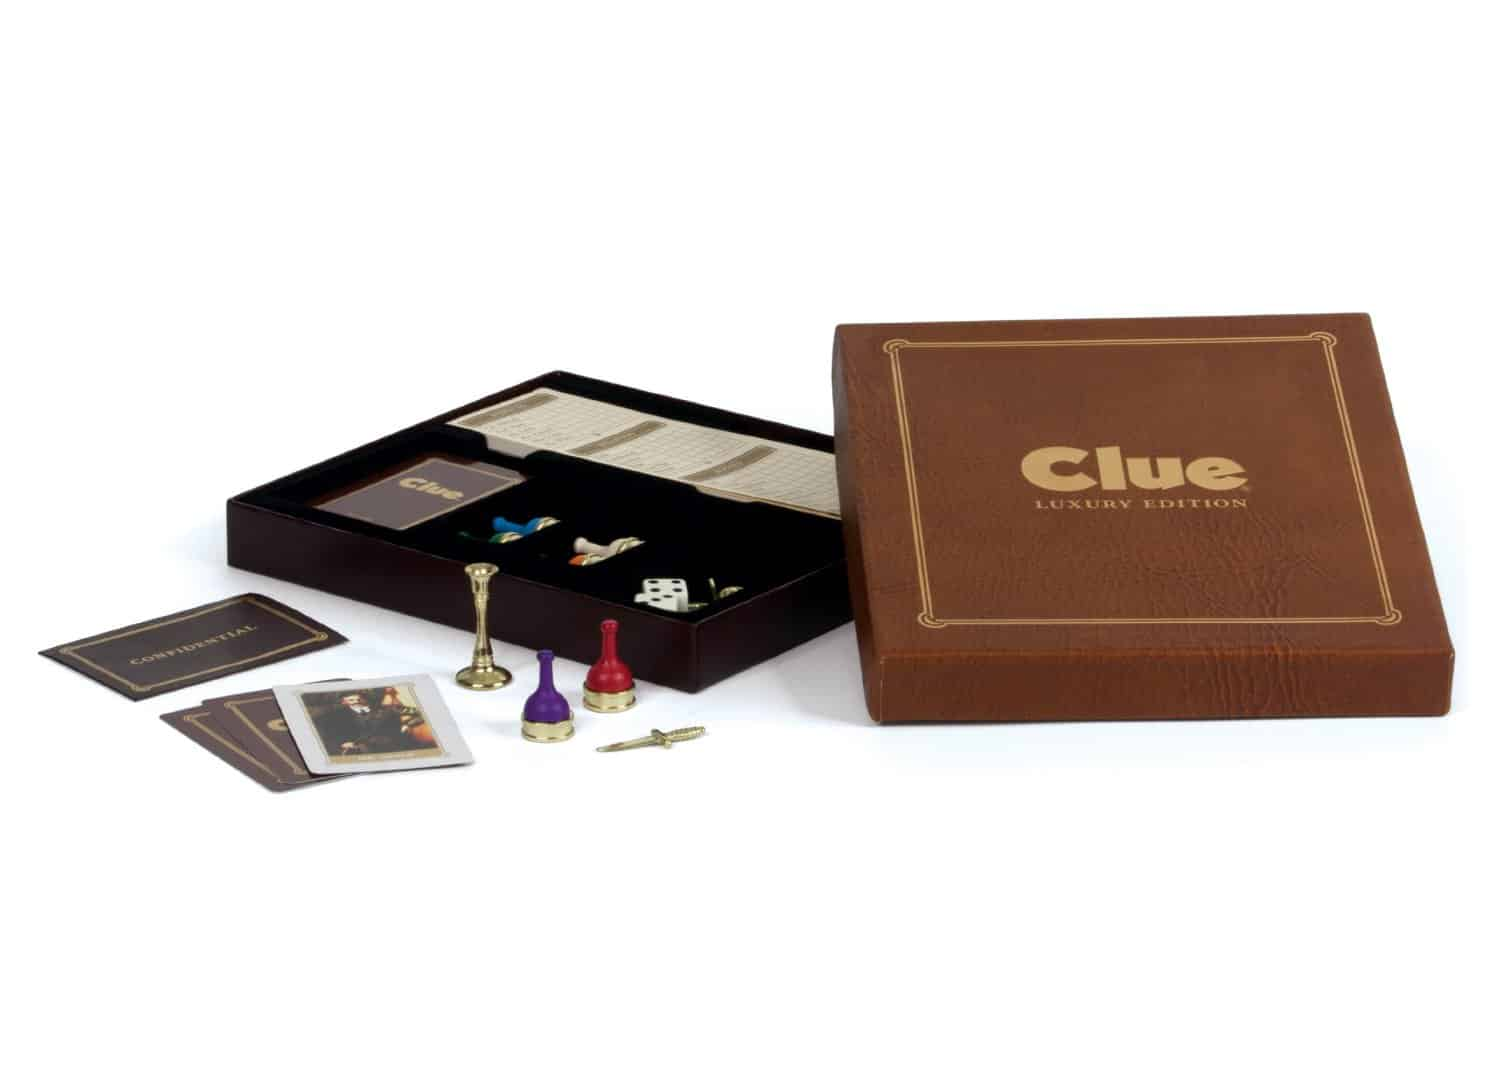 Clue Luxury Edition Box Packaging Gold Stamped Cards and Envelopes